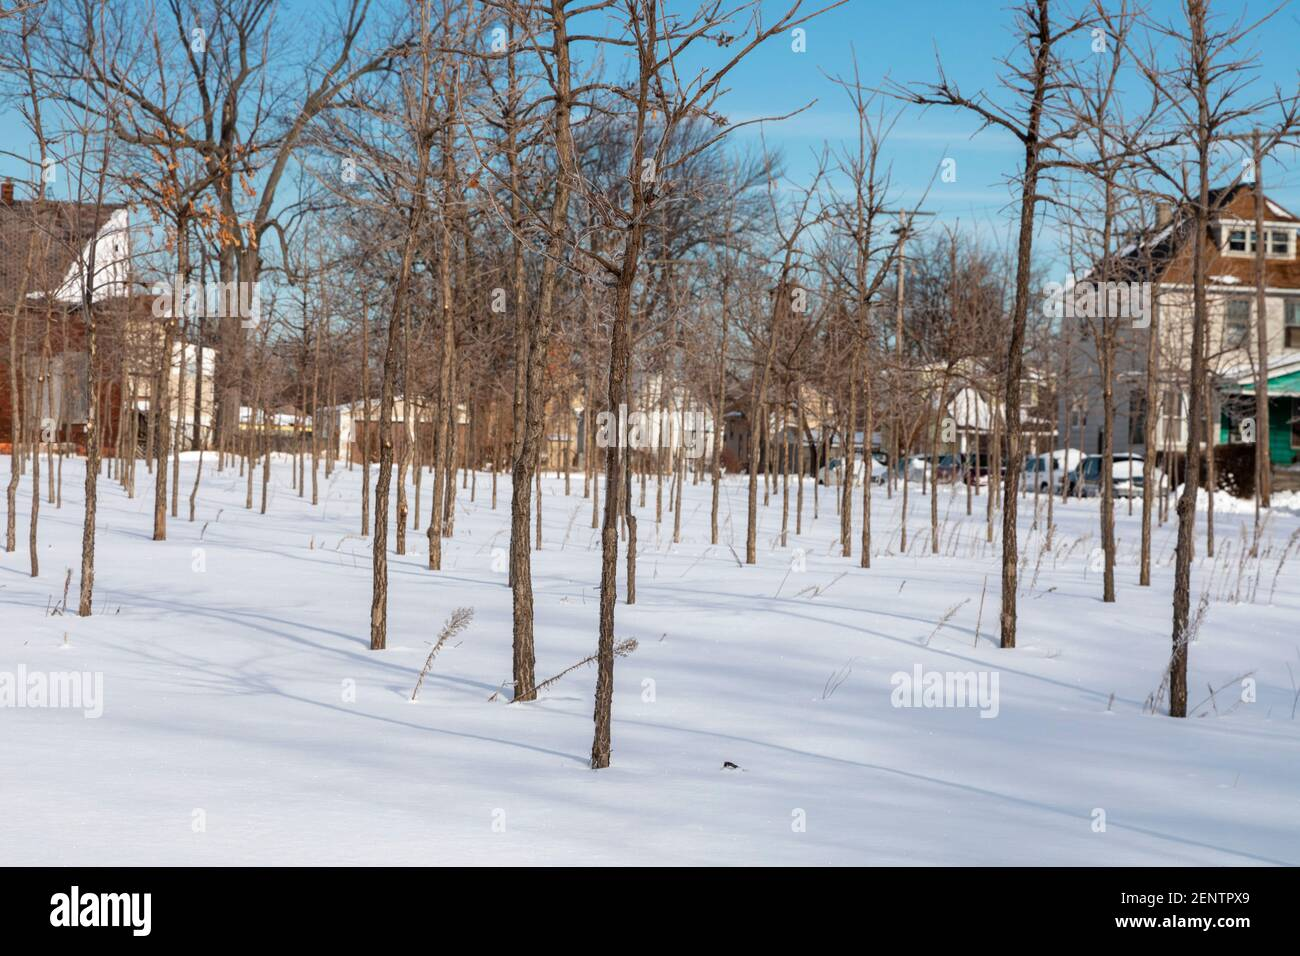 Detroit, Michigan - Trees in winter, part of the Hantz Woodlands tree farm. The vast amount of empty land in Detroit has allowed the company, with vol Stock Photo